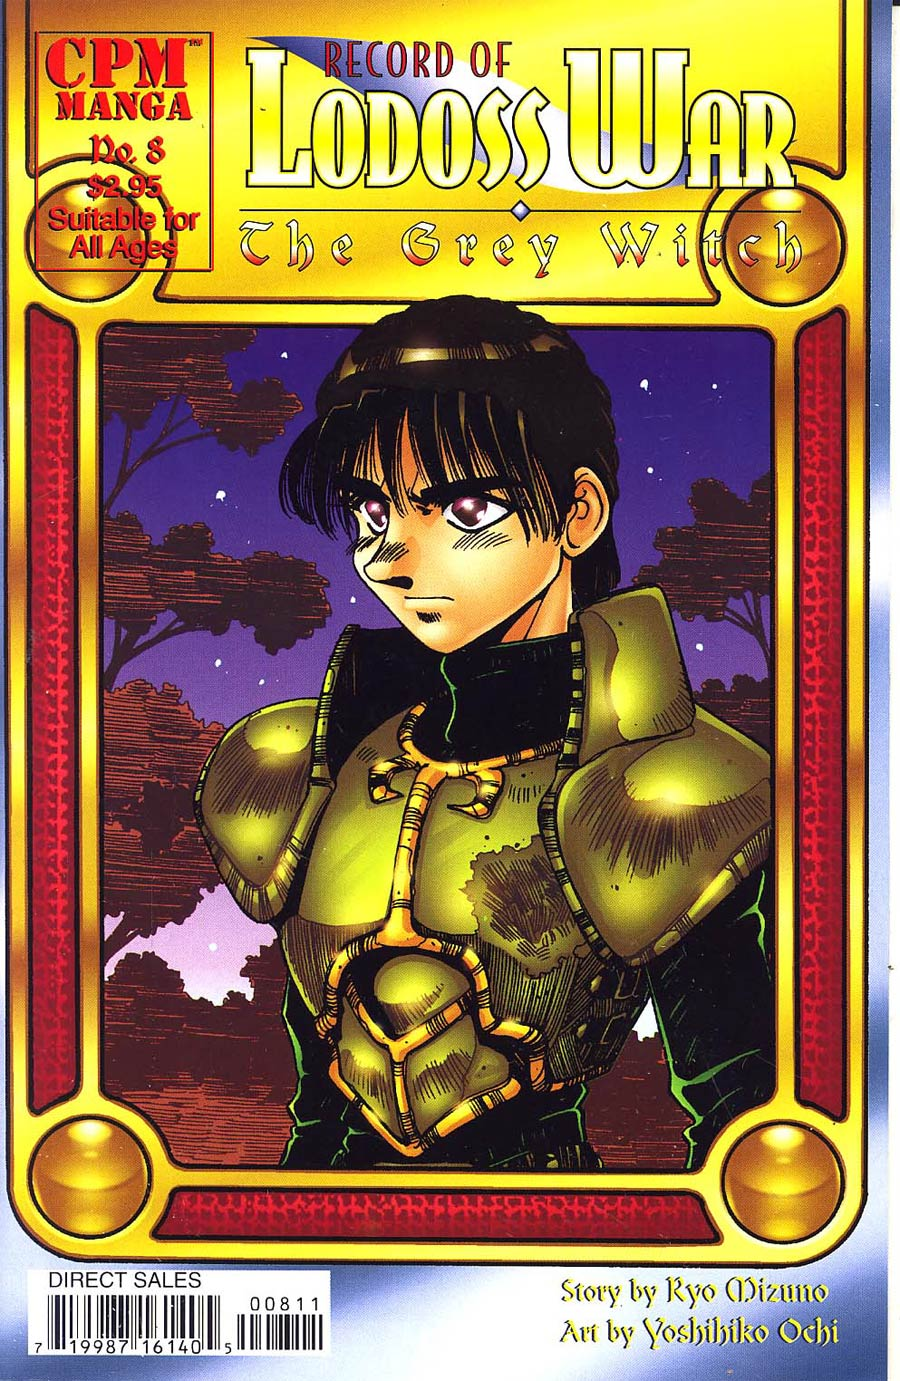 Record Of Lodoss War The Grey Witch #8